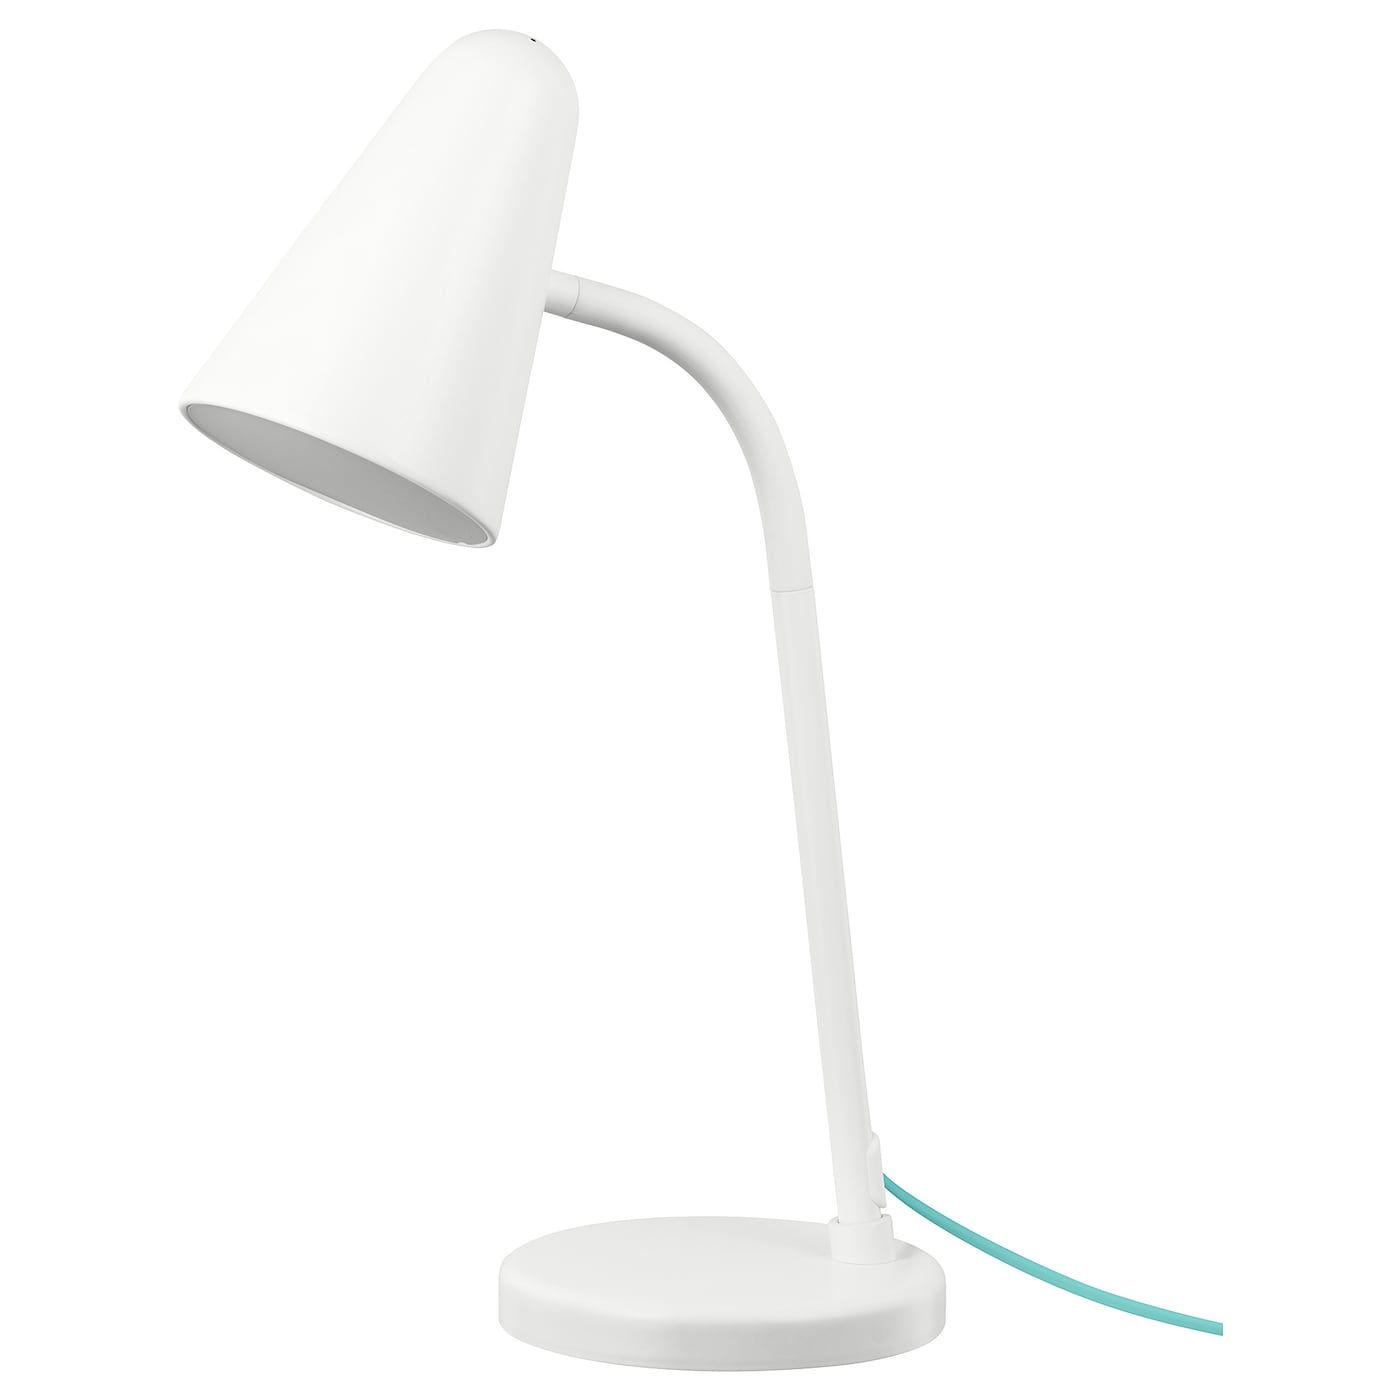 IKEA FUBBLA LED work lamp Safety tested and tamper-proof to protect little fingers.